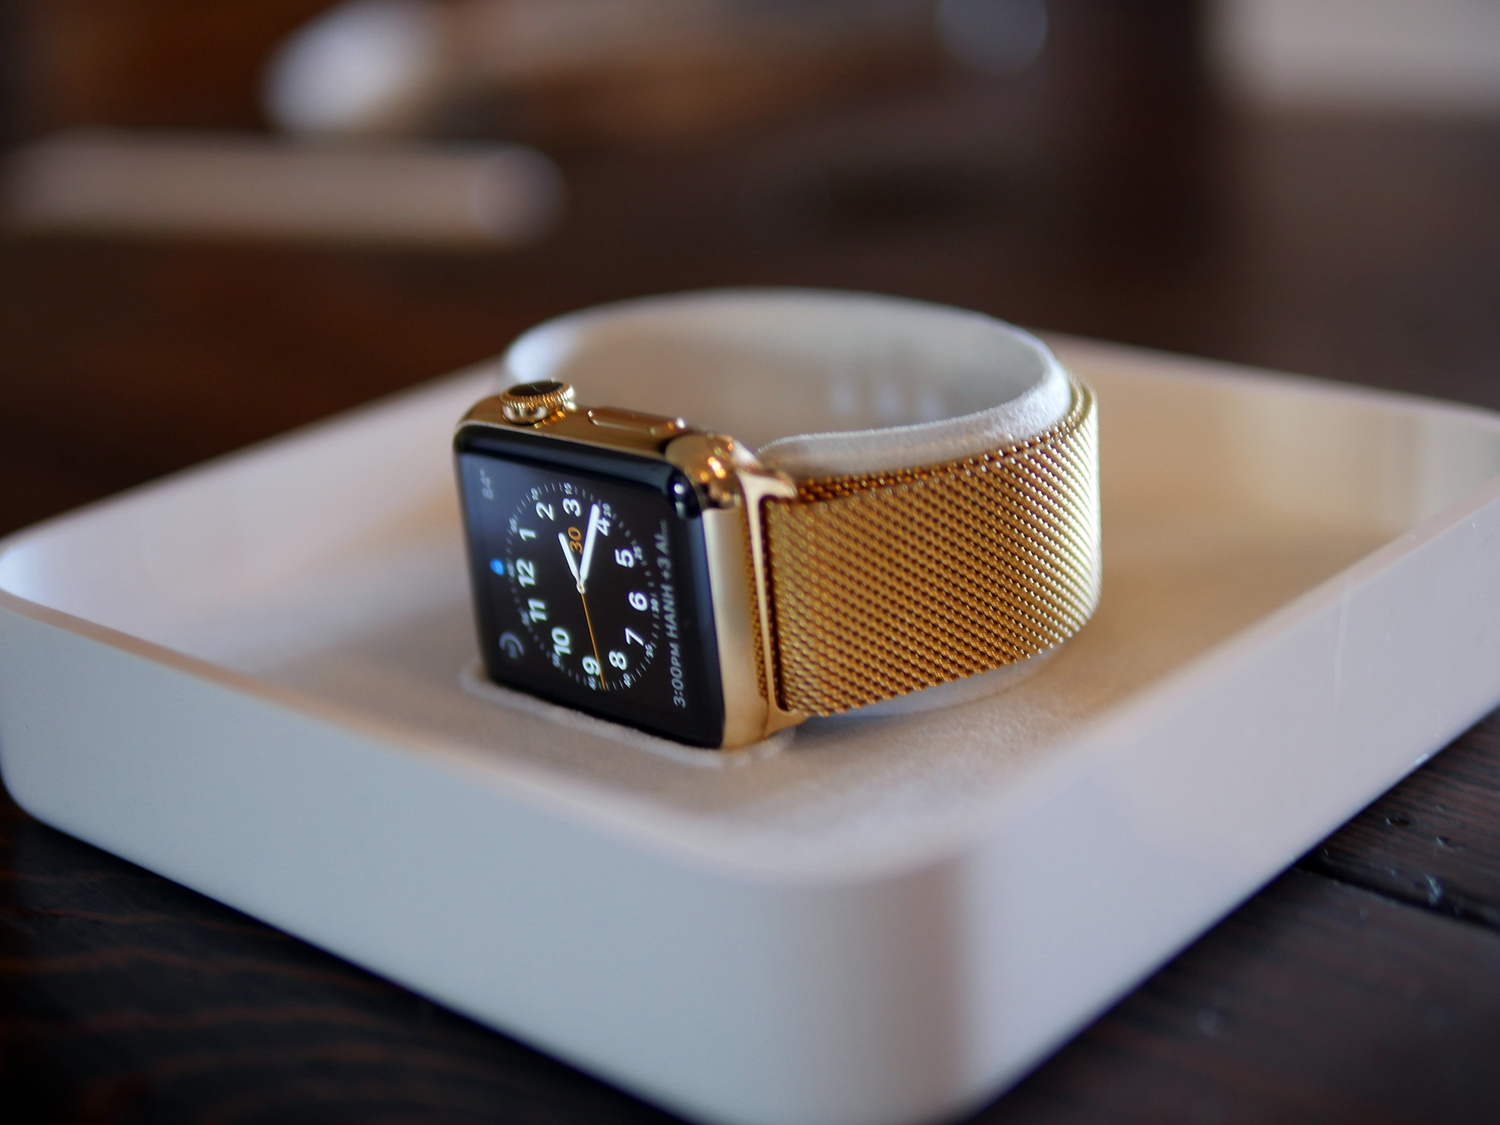 How to Get a Gold Apple Watch Without Spending $10,000